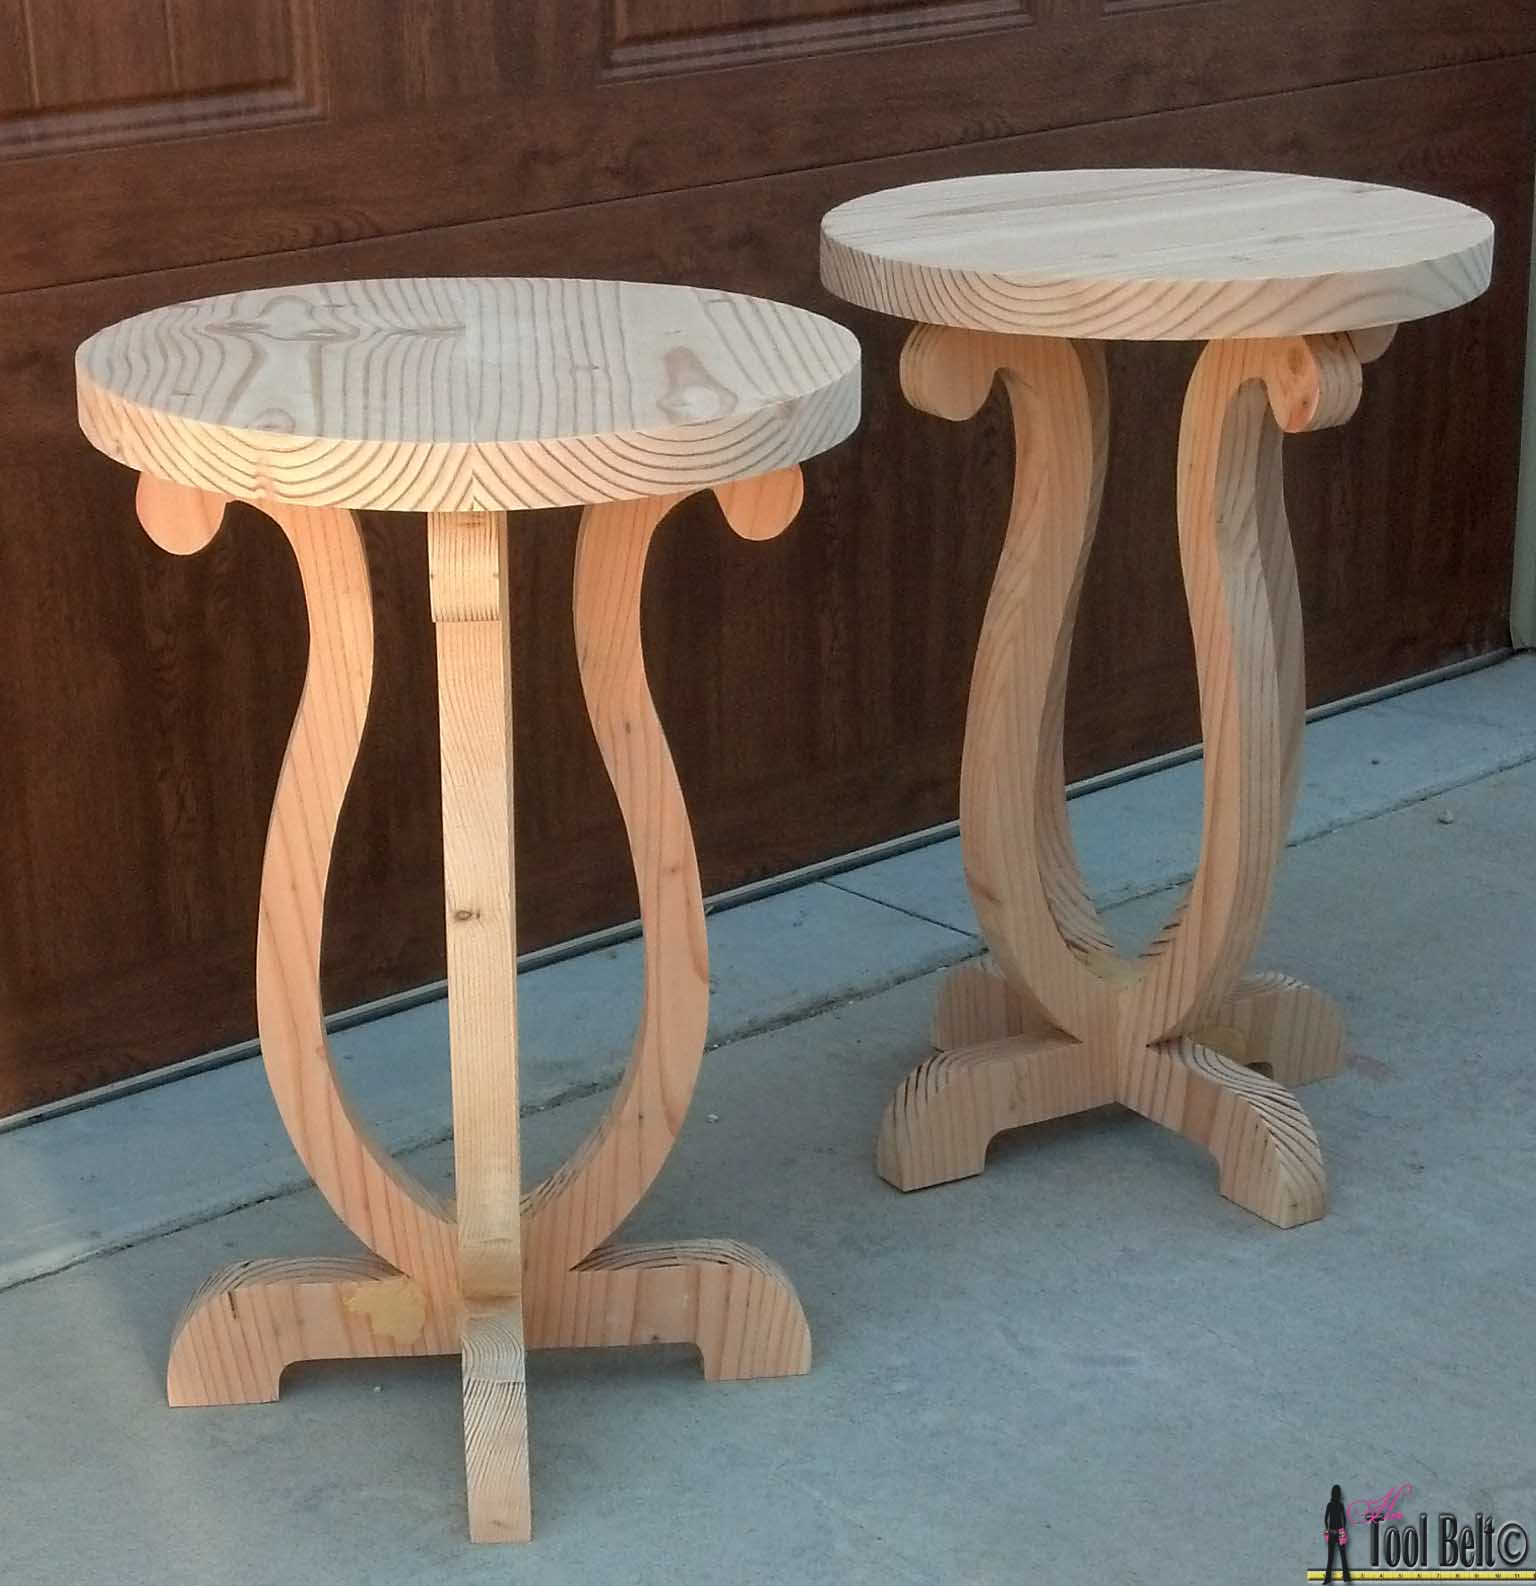 Exceptional Build A Cute Side Table From A Simple 2 X 10 Board. Free Plans And